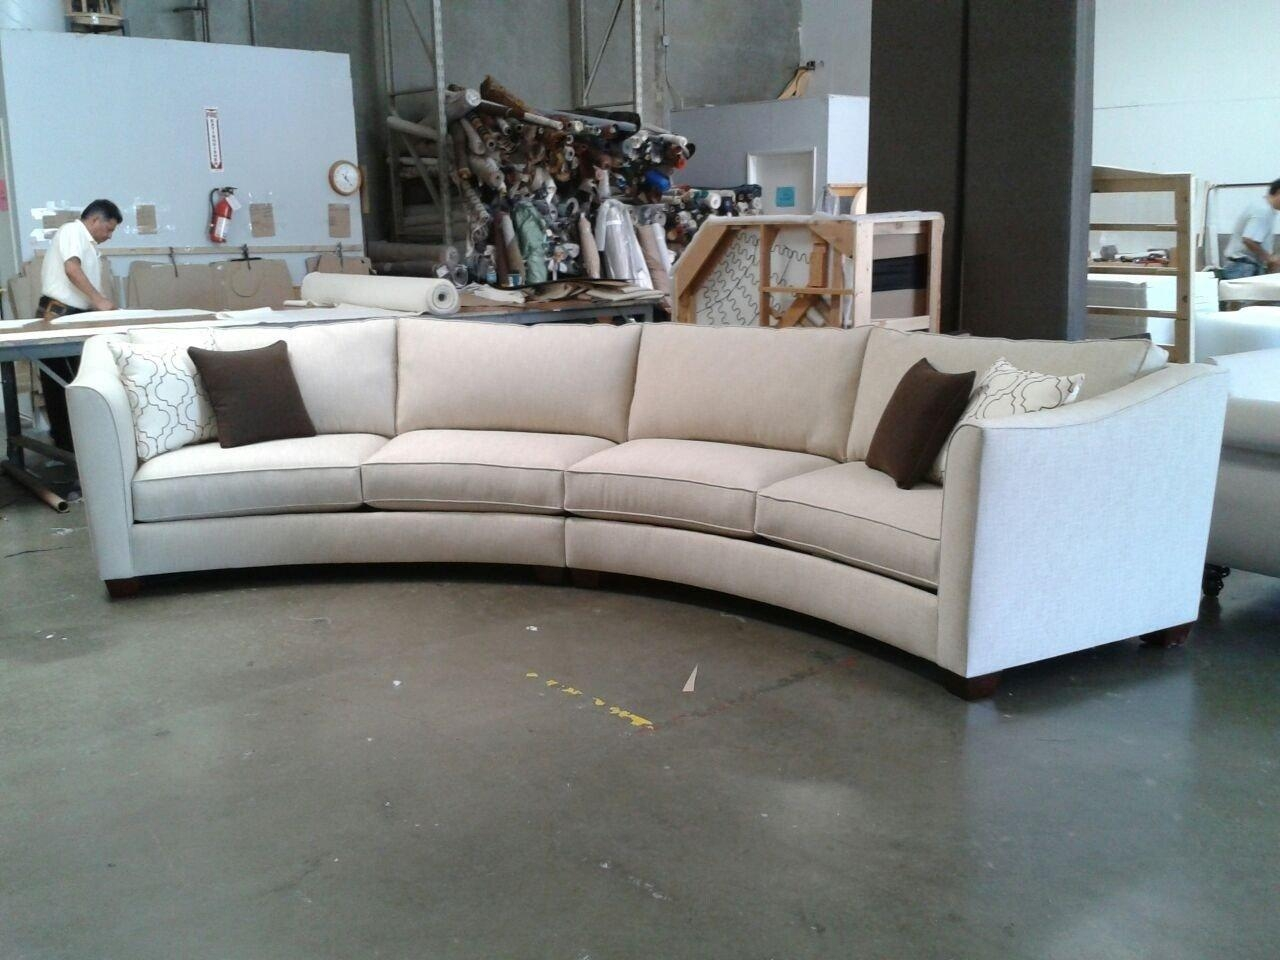 Curved Sectional Sofa: Glamour For Interior — Home Design Within Round Sectional Sofa (View 16 of 20)